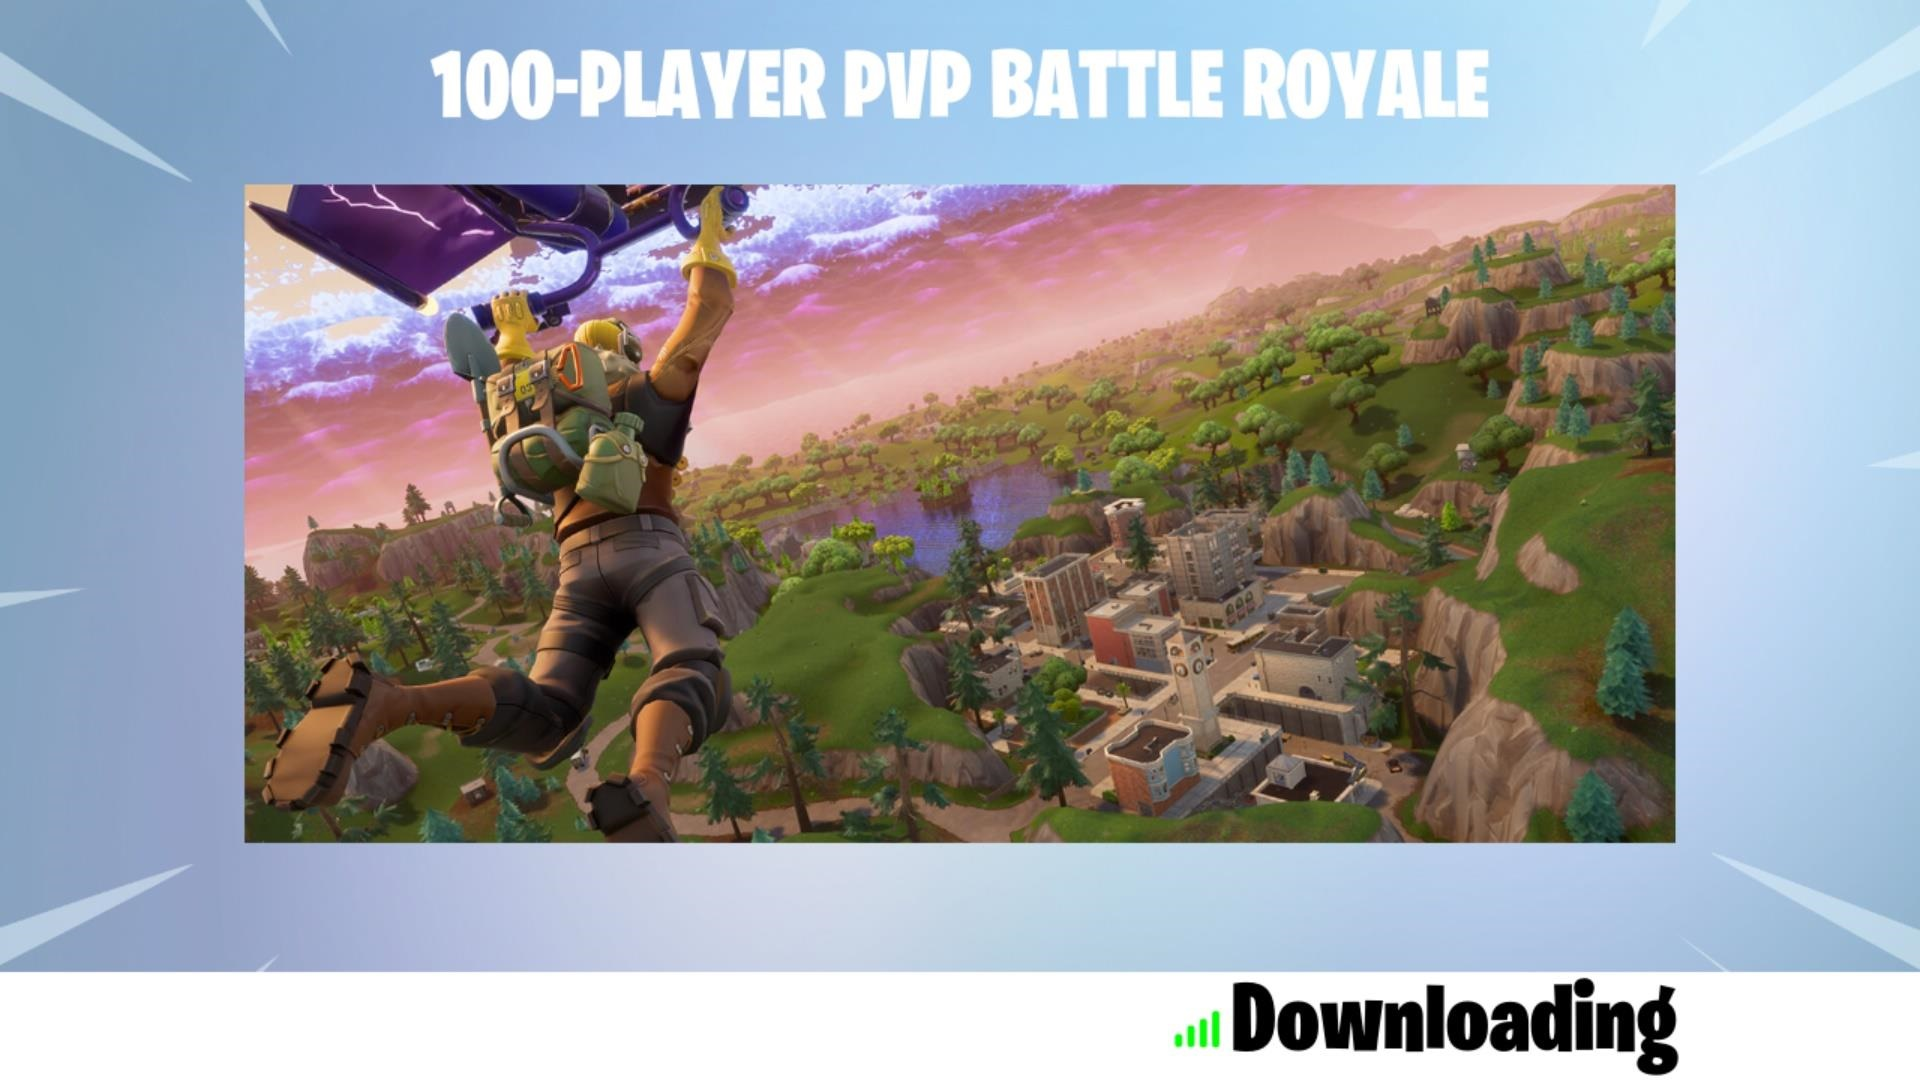 How to Install Fortnite Battle Royale on Your Android Mobile Phone — No Root Needed